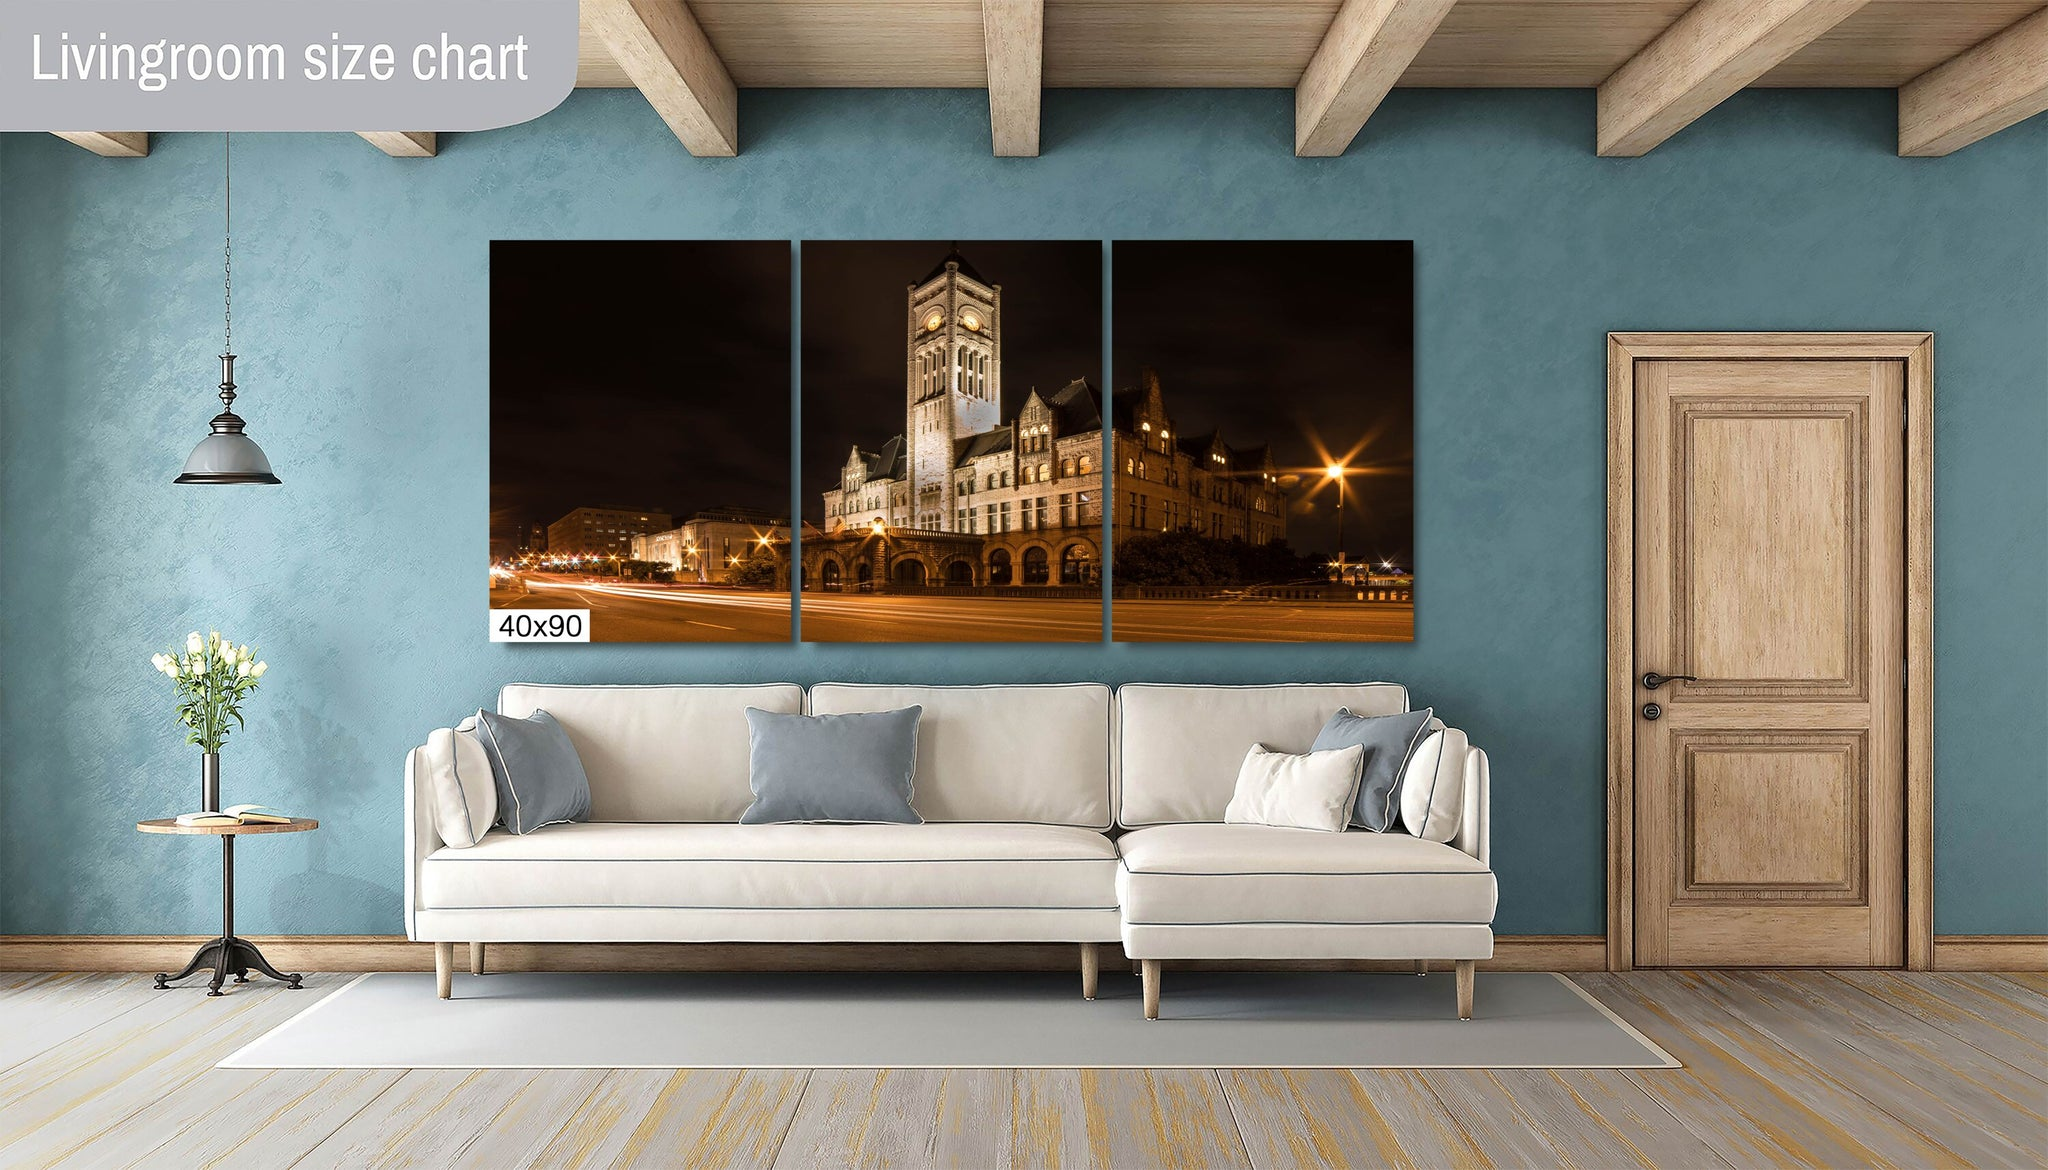 Union Station Nashville City Photography Metal Print Wall Art Picture Home Decor Poster Landmark Bedroom Livingroom